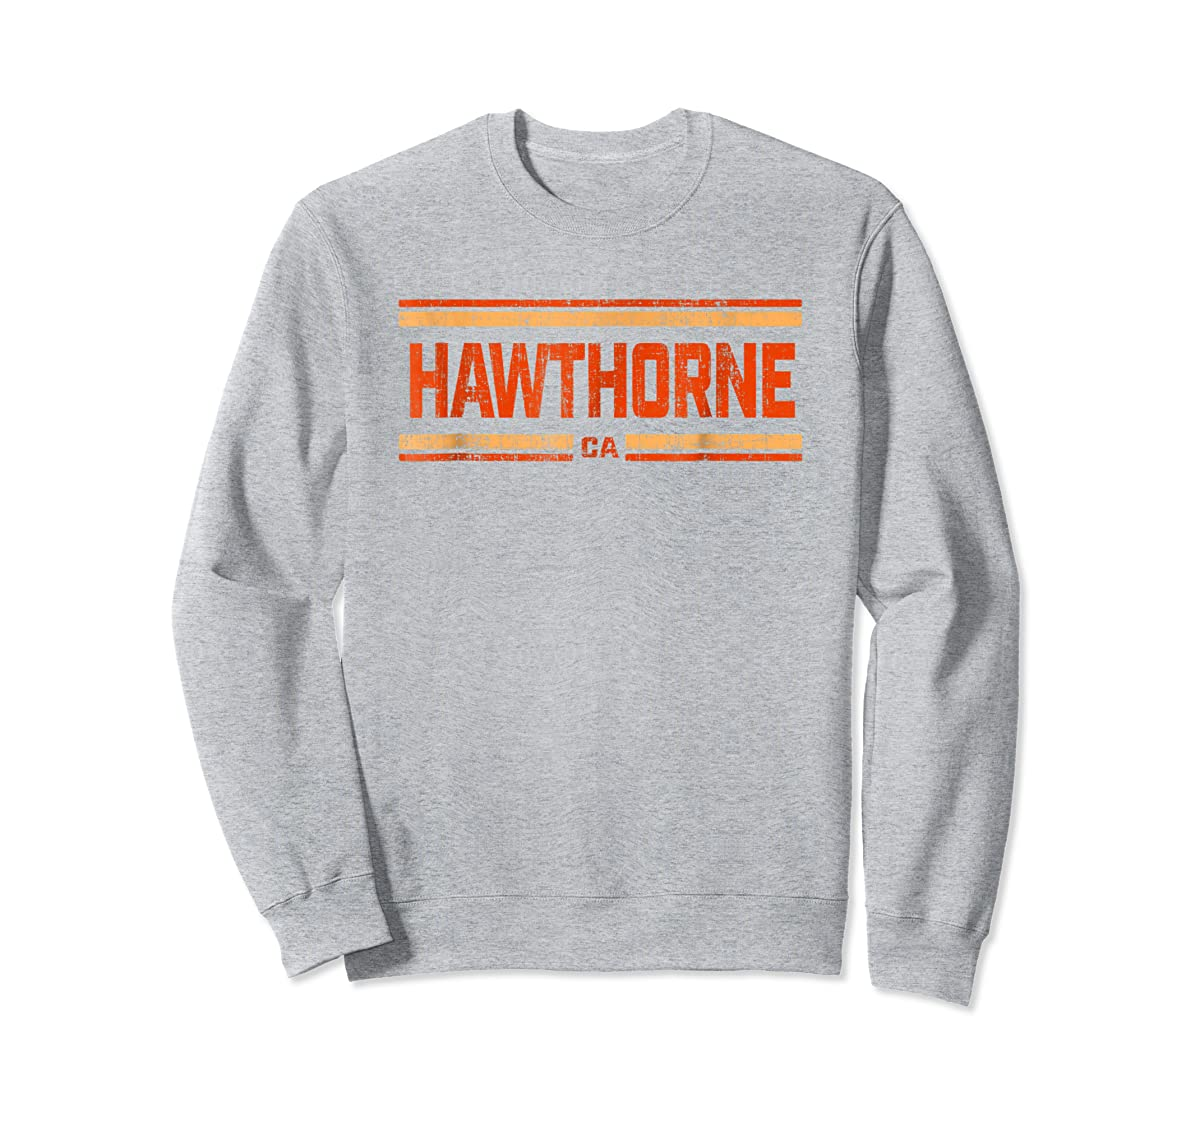 Retro Vintage Hawthorne CA Distressed T-Shirt-Sweatshirt-Sport Grey